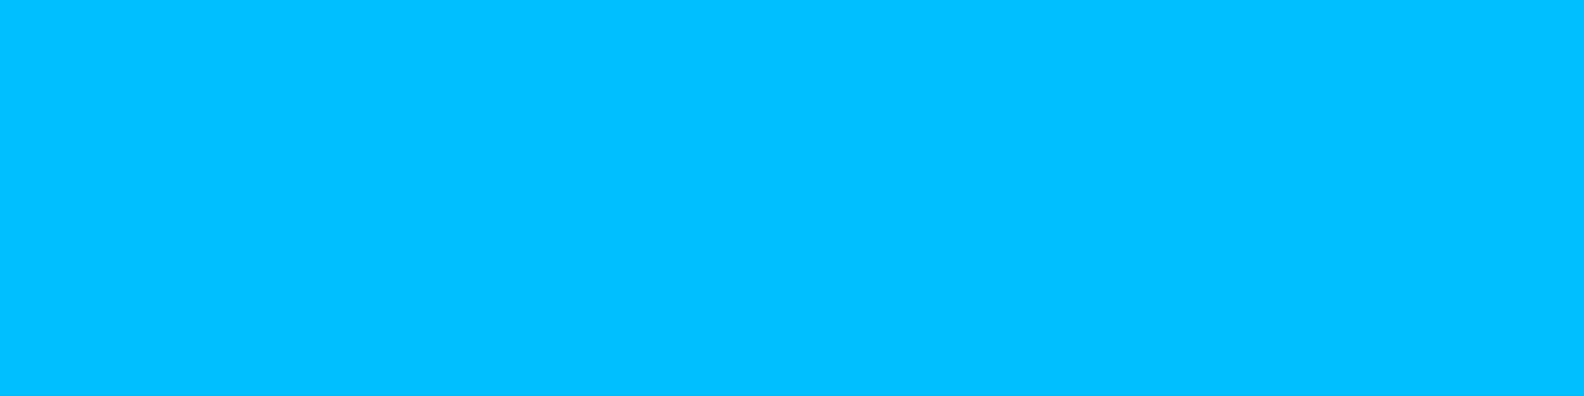 1584x396 Deep Sky Blue Solid Color Background